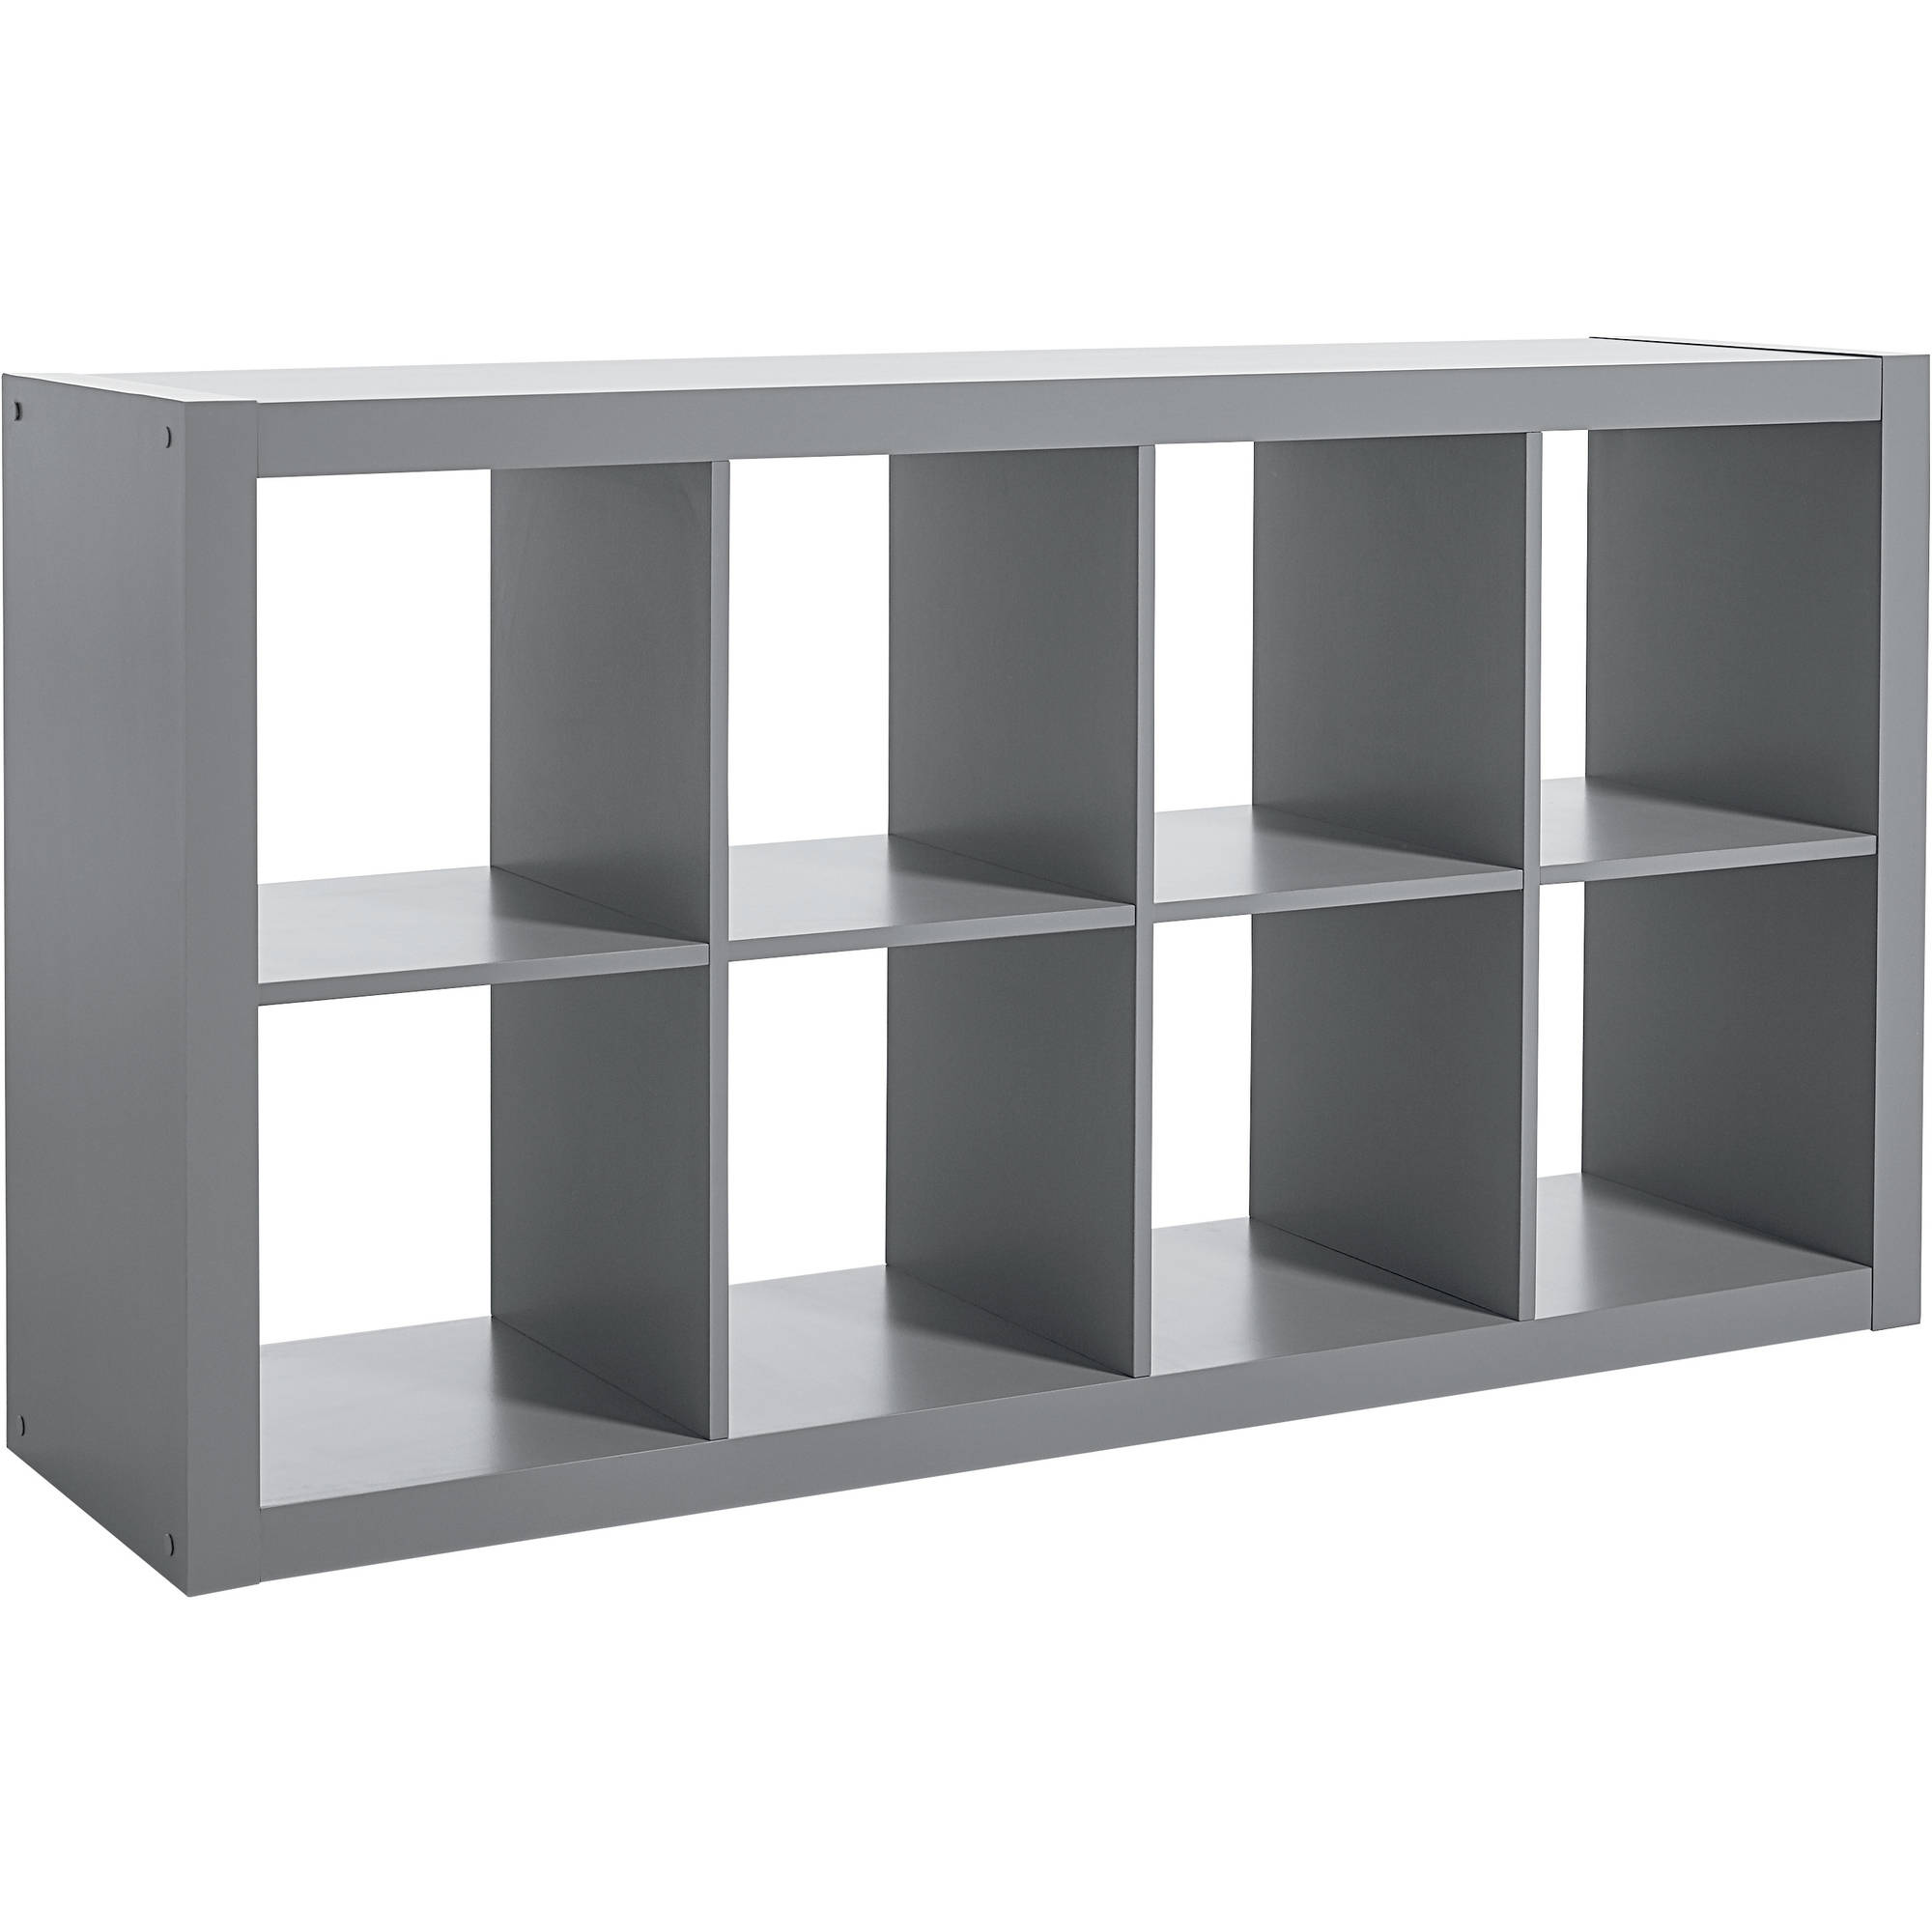 Ikea Used Furniture Better Homes And Gardens 8 Cube Organizer Multiple Colors